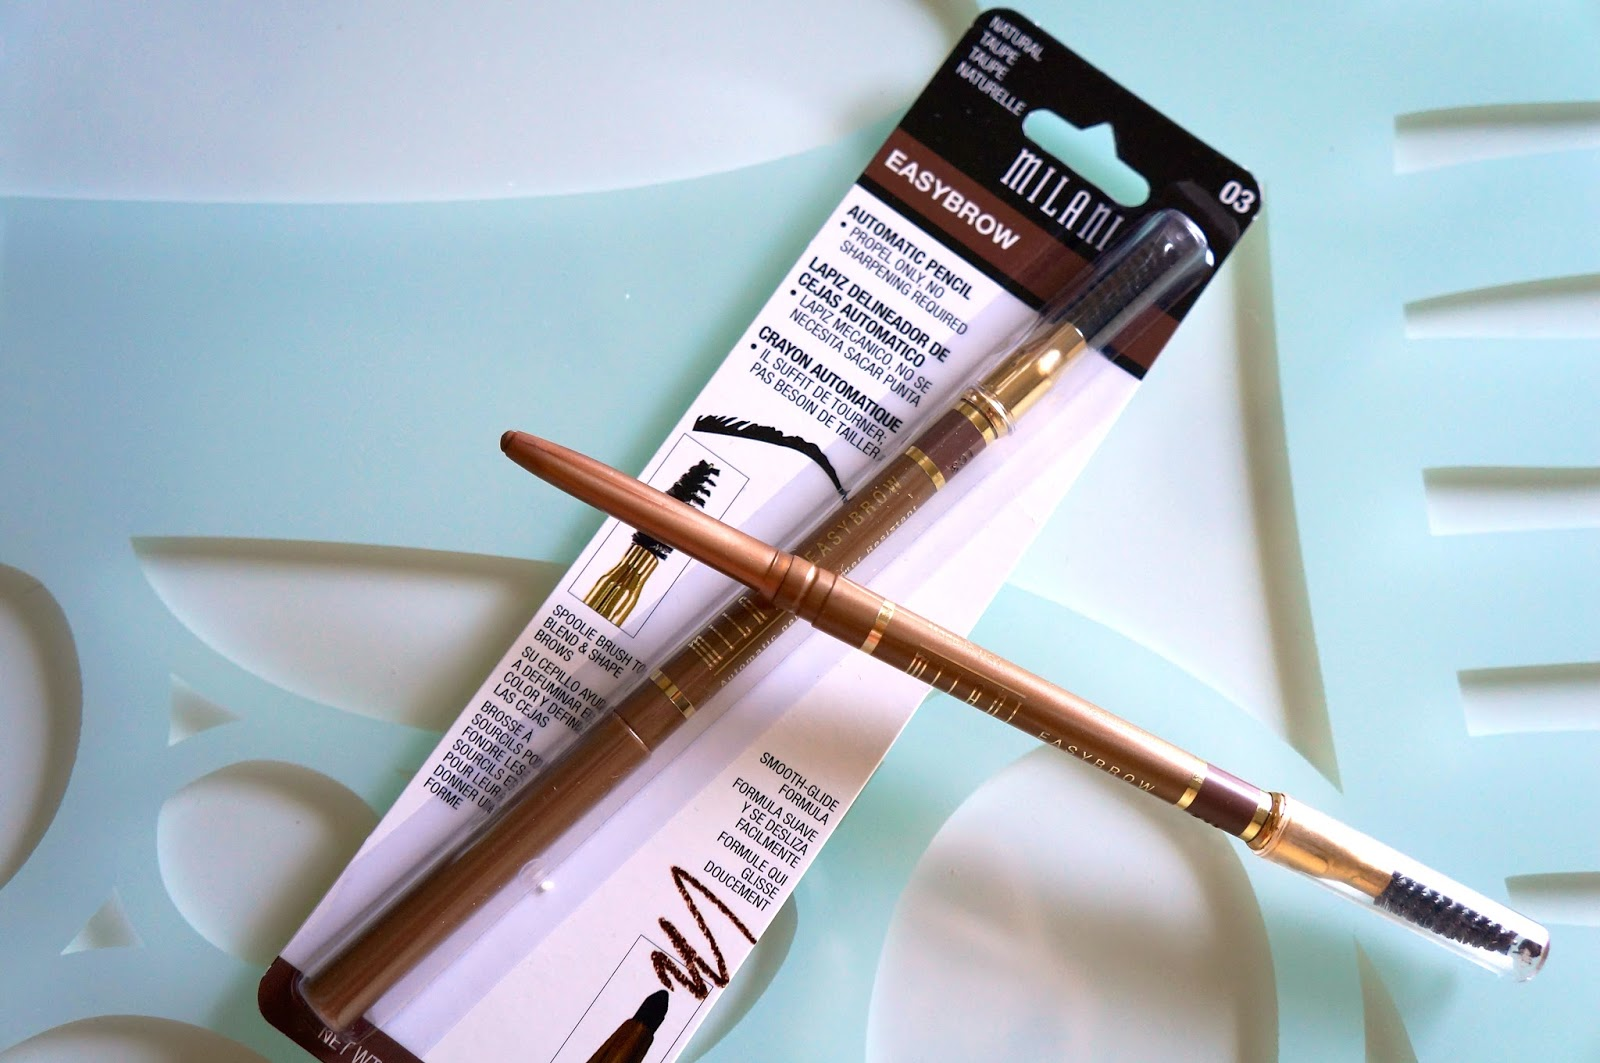 Glamour By Lexi R Milani Easybrow Automatic Pencil Review